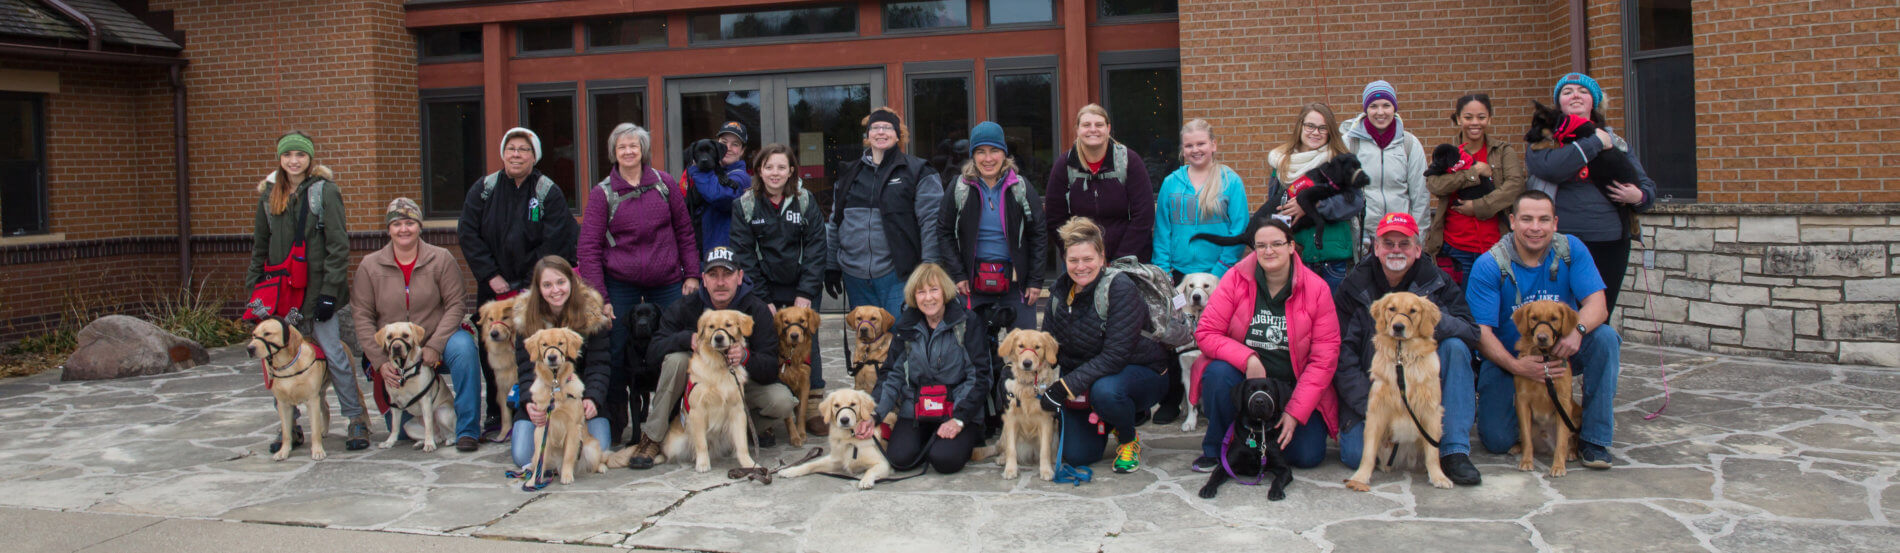 group shot of dogs and trainers/owners